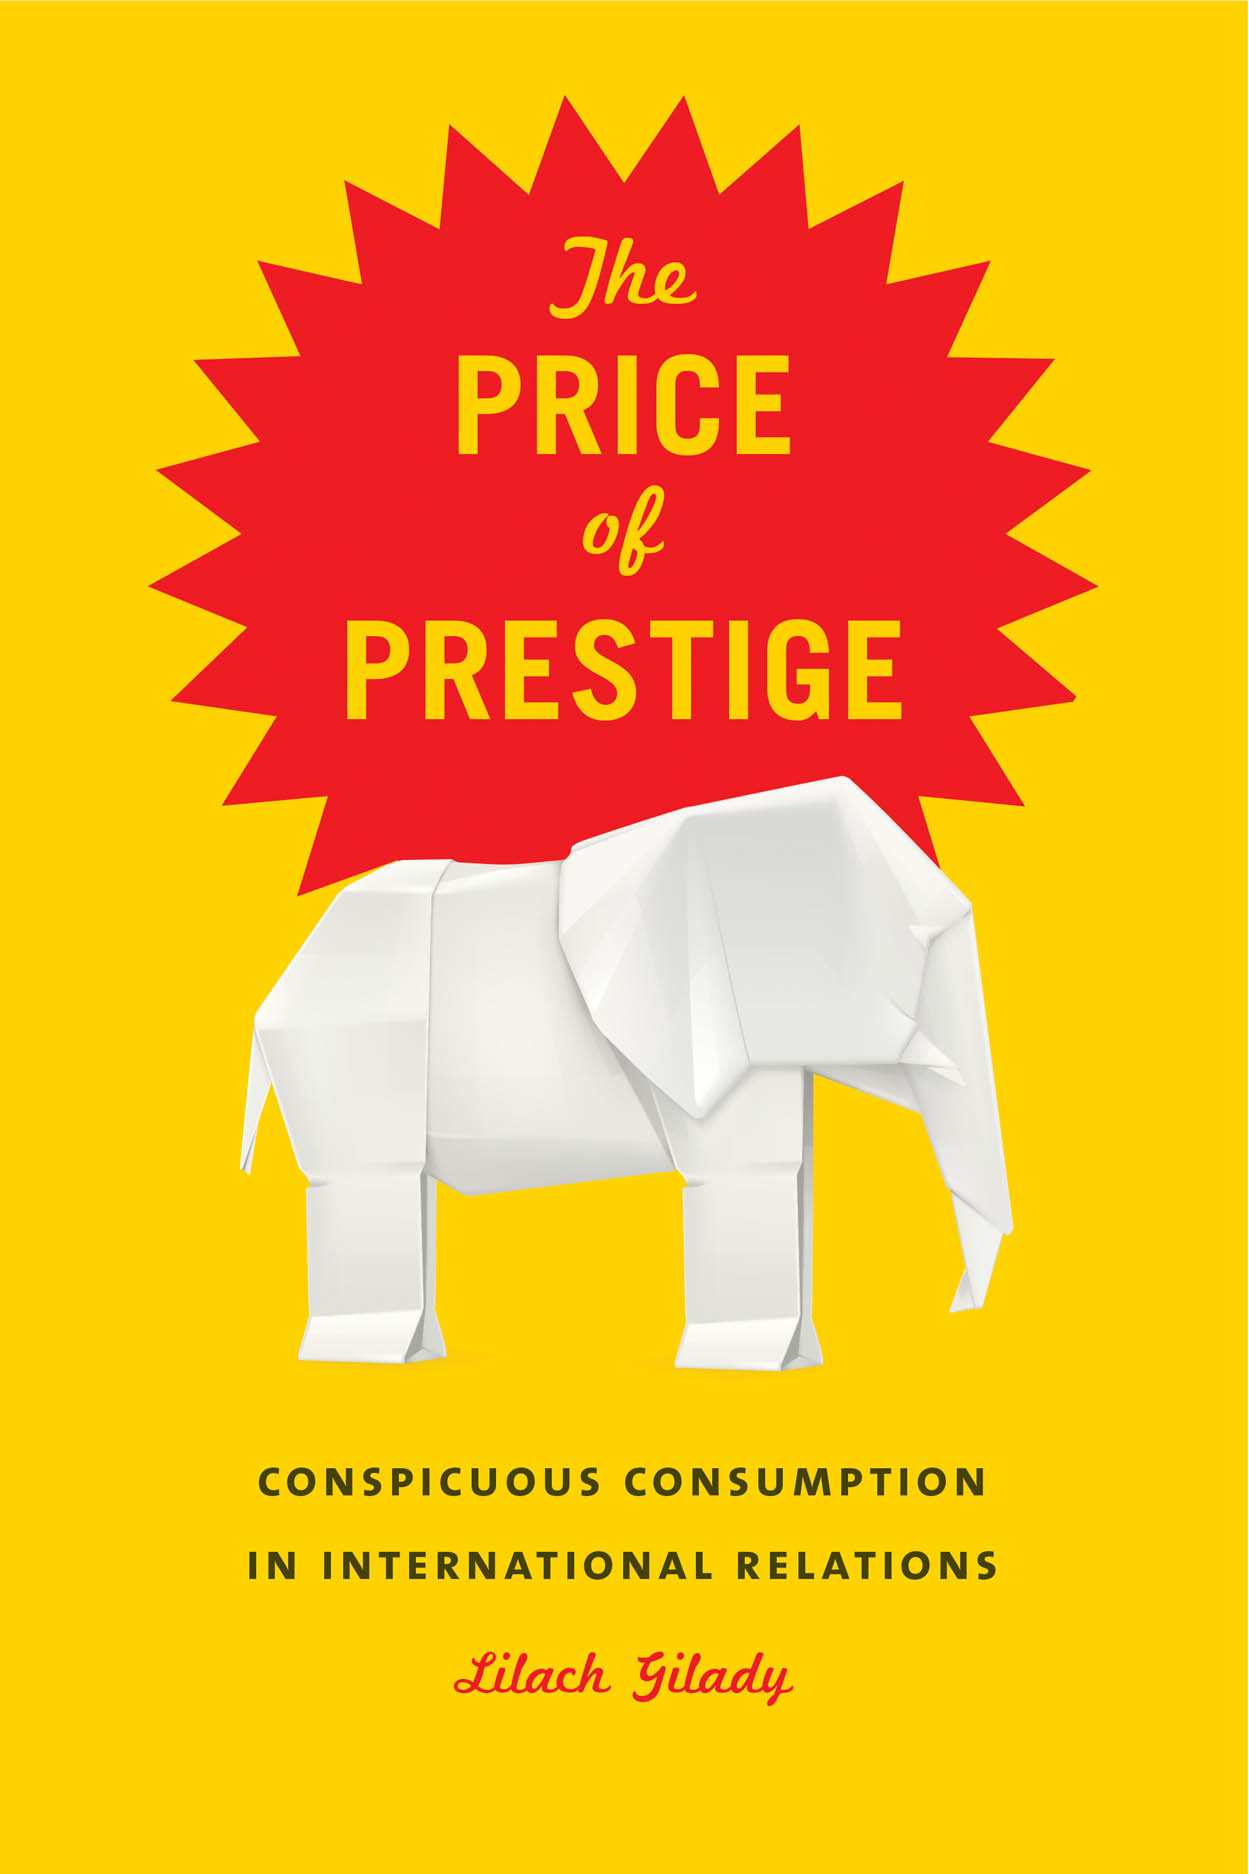 The Price of Prestige: Conspicuous Consumption in International Relations